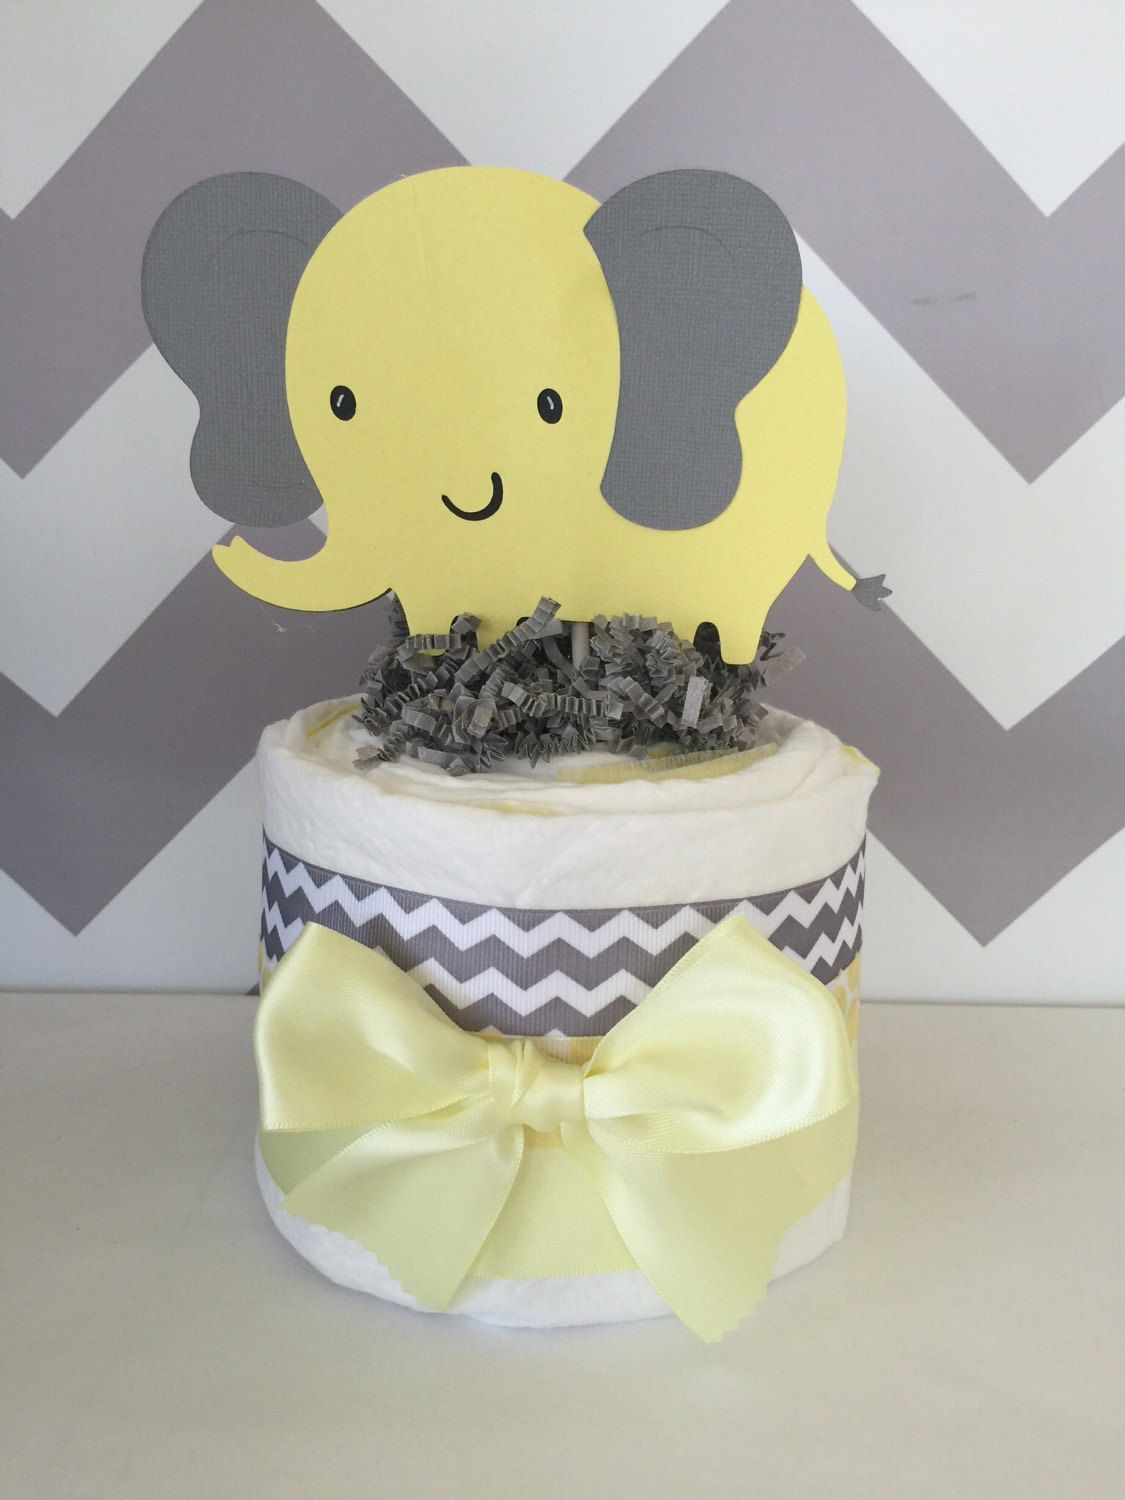 Delightful Mini Elephant Theme Baby Shower Diaper Cake In Gray And Yellow, Chevron Gray  And Yellow